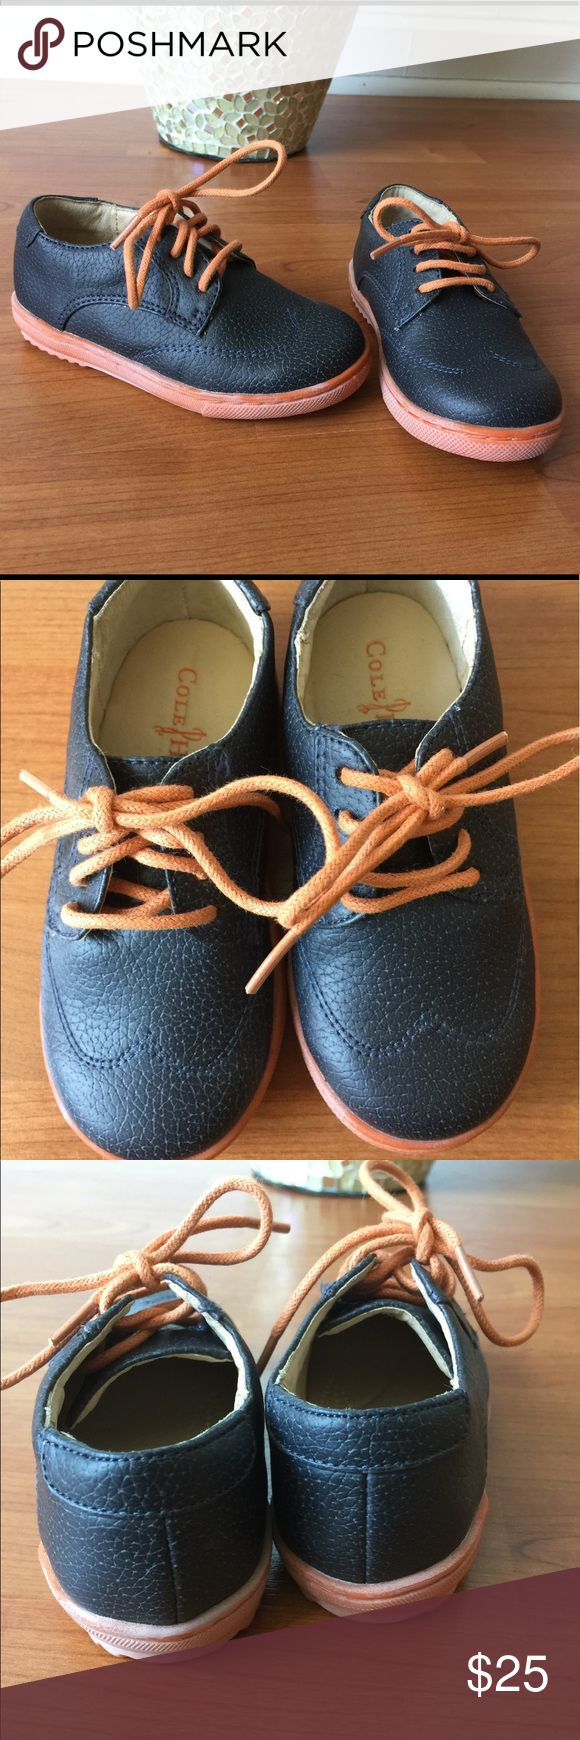 """New Cole Haan Navy Blue leather shoes New size 6. Cole Haan """"Anthony Jasper"""" shoe. Lace up Navy Blue Orange. Cole Haan Shoes Dress Shoes"""